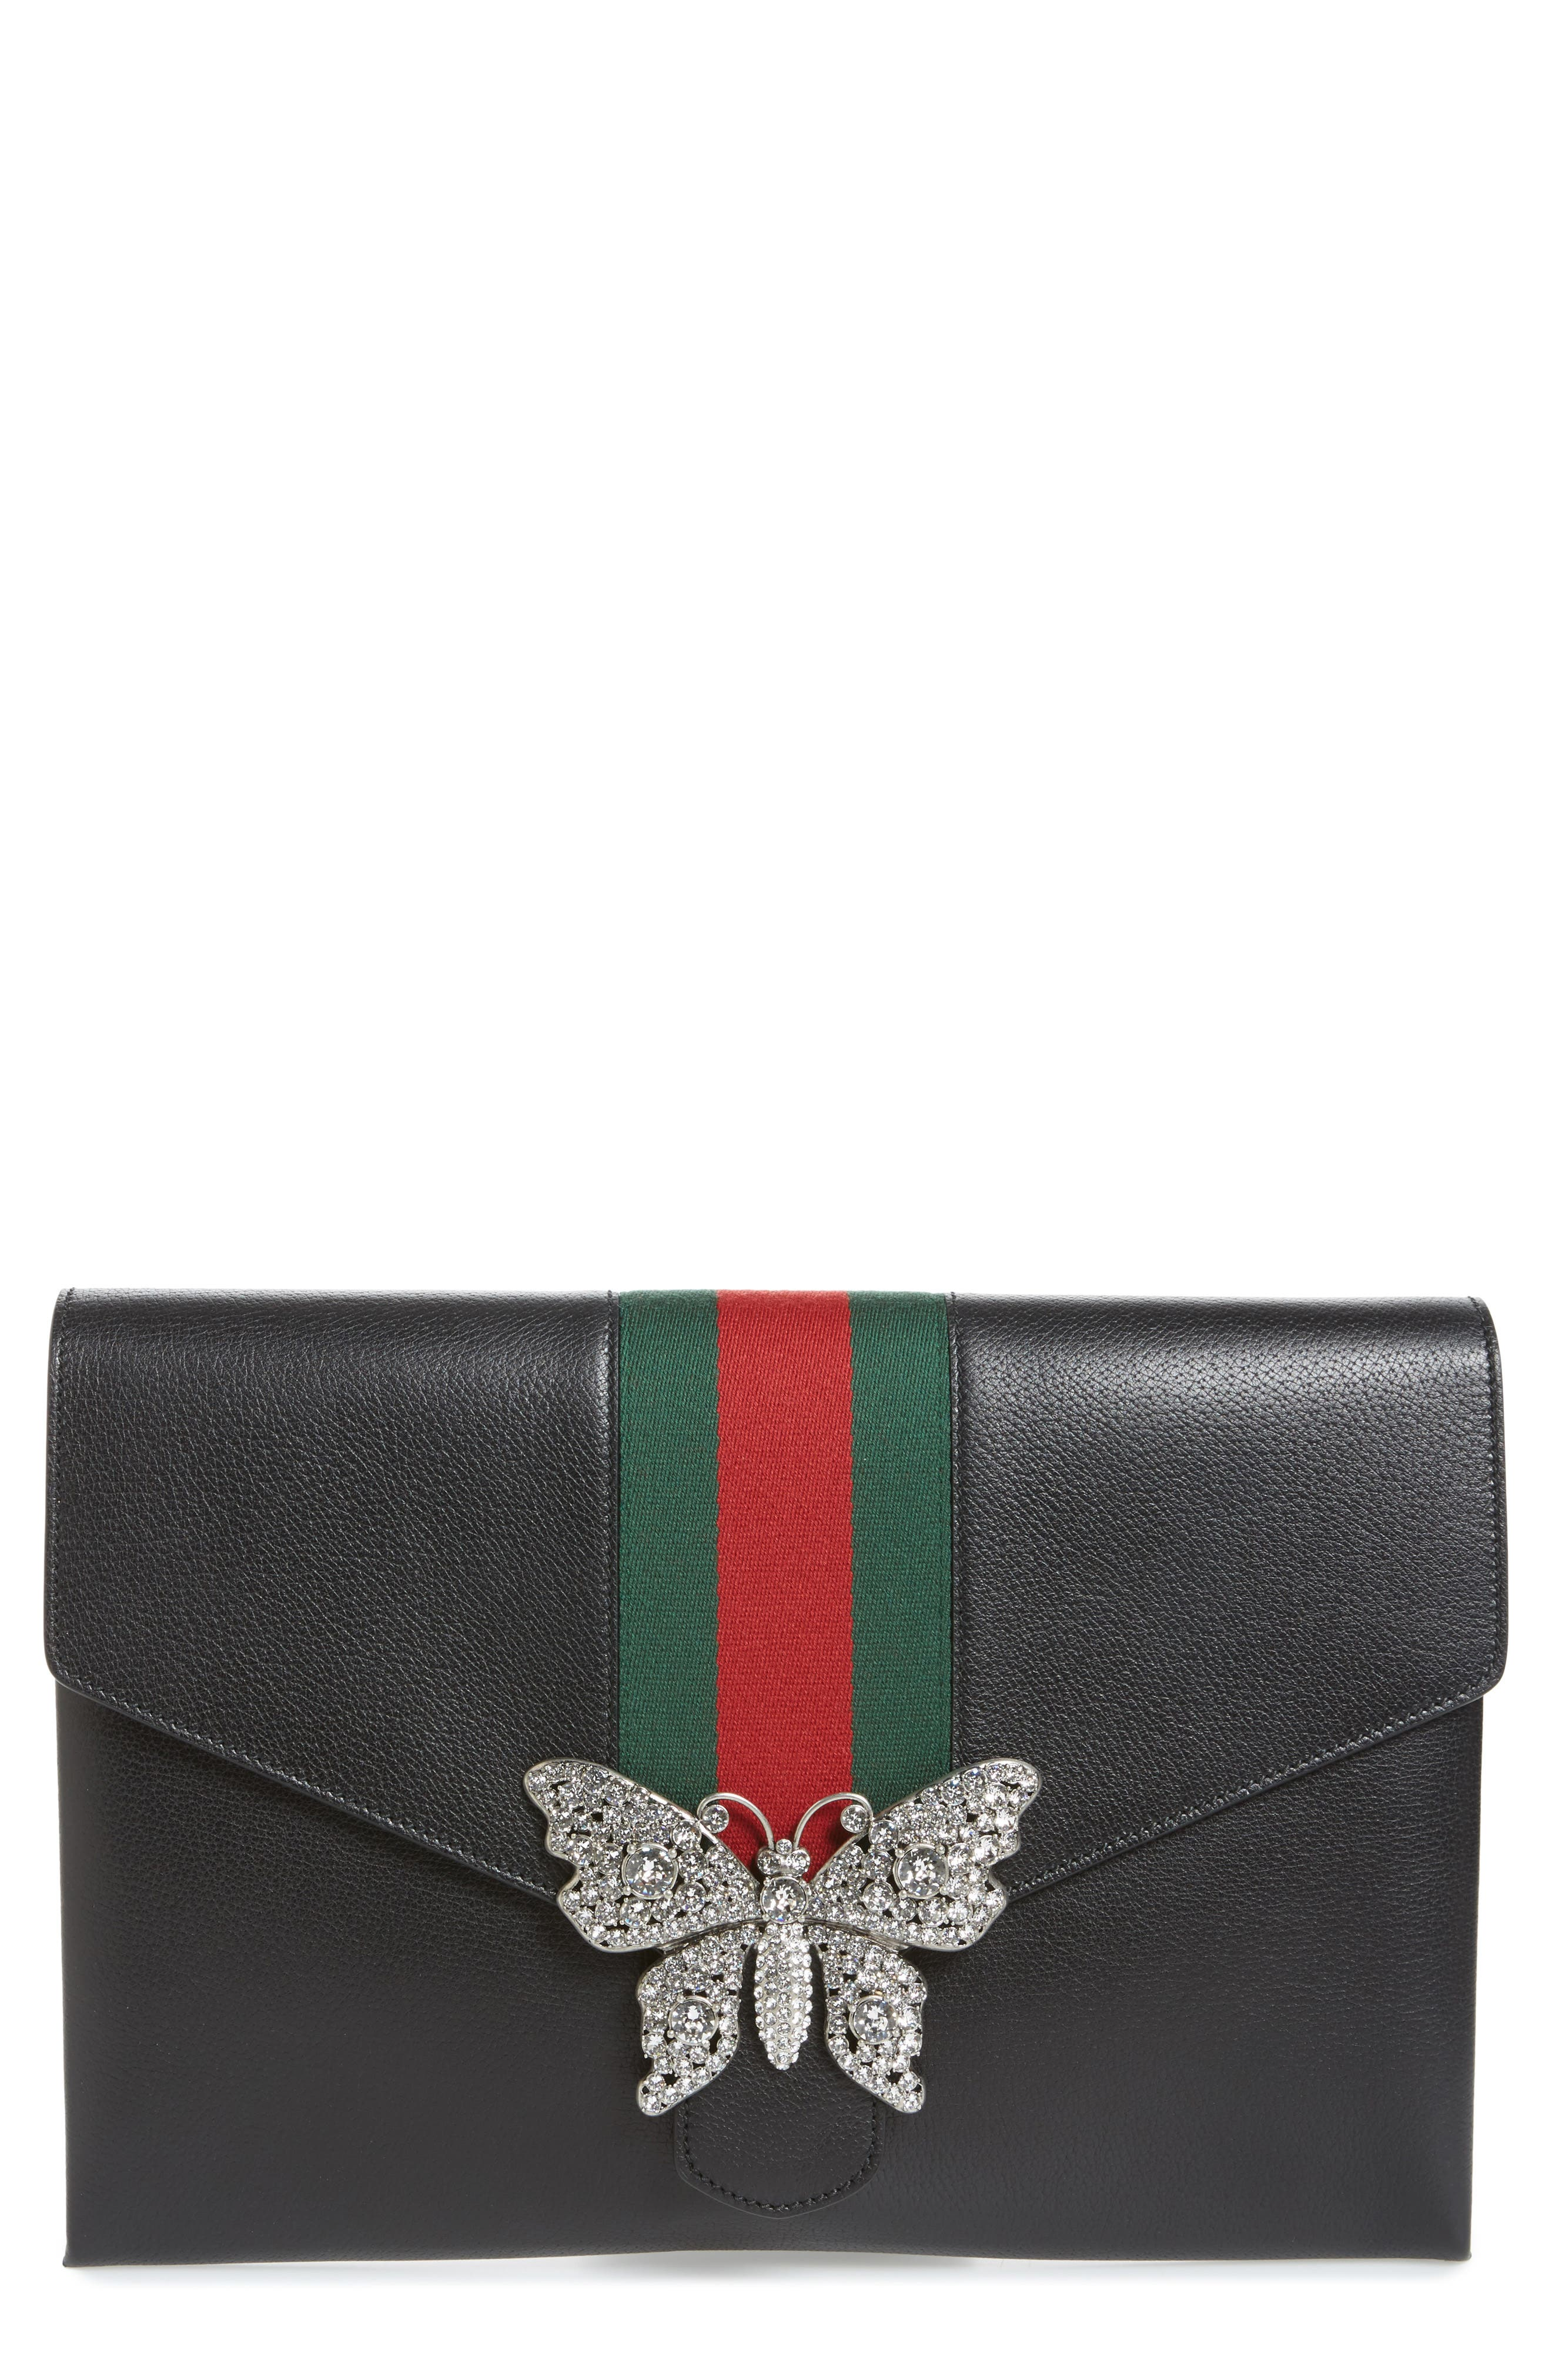 Alternate Image 1 Selected - Gucci Totem Crystal Embellished Butterfly Leather Clutch